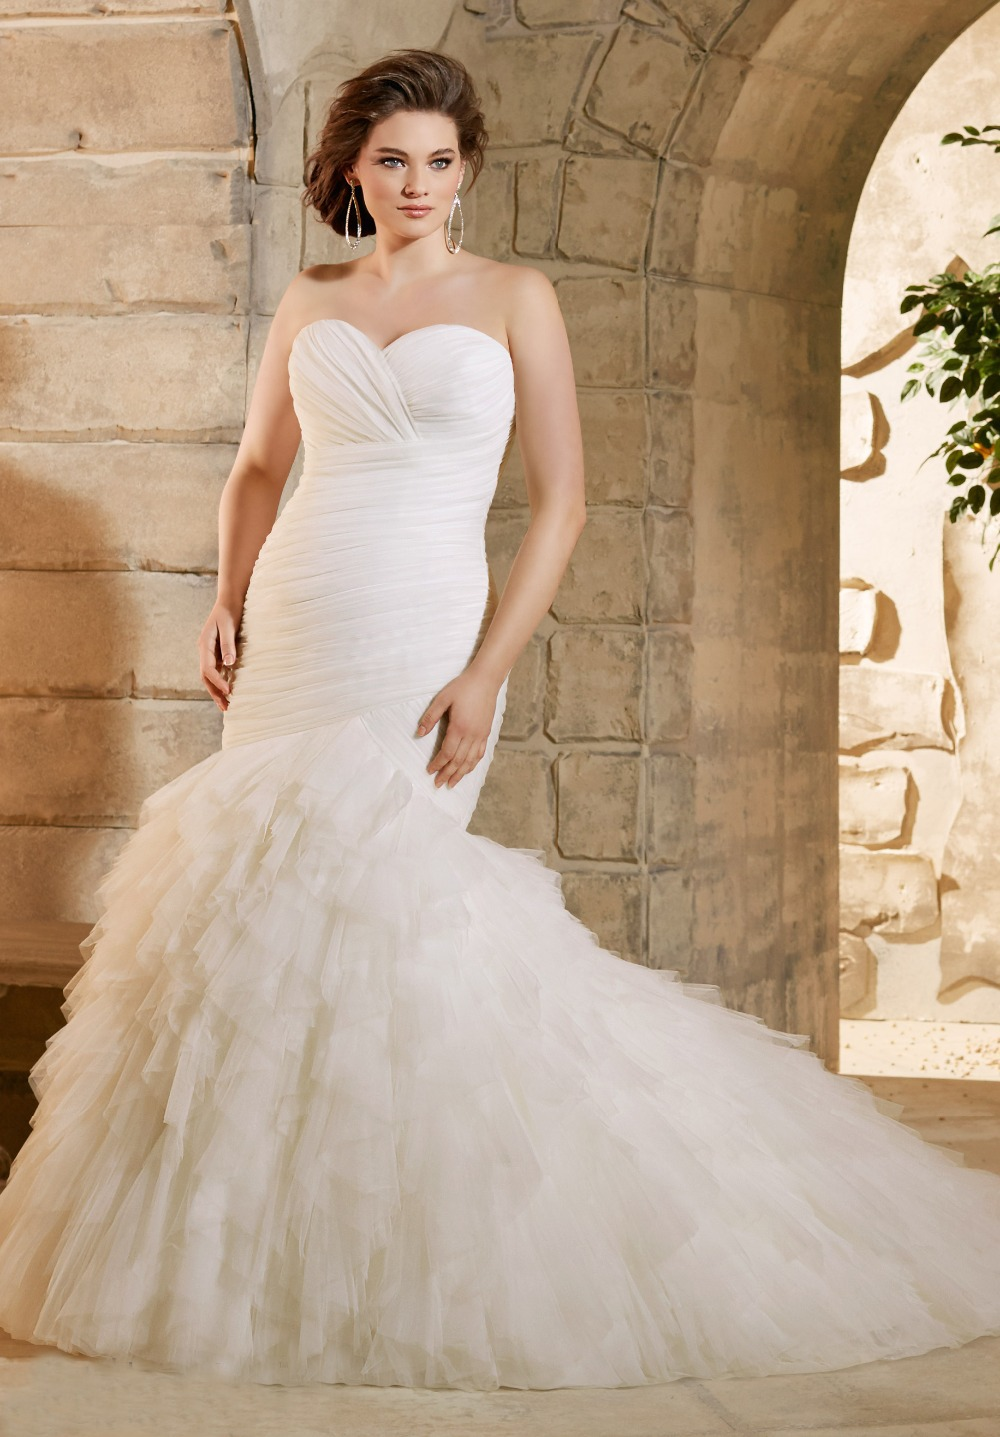 High Quality Plus Size Wedding Dresses Mermaid Style-Buy Cheap ...